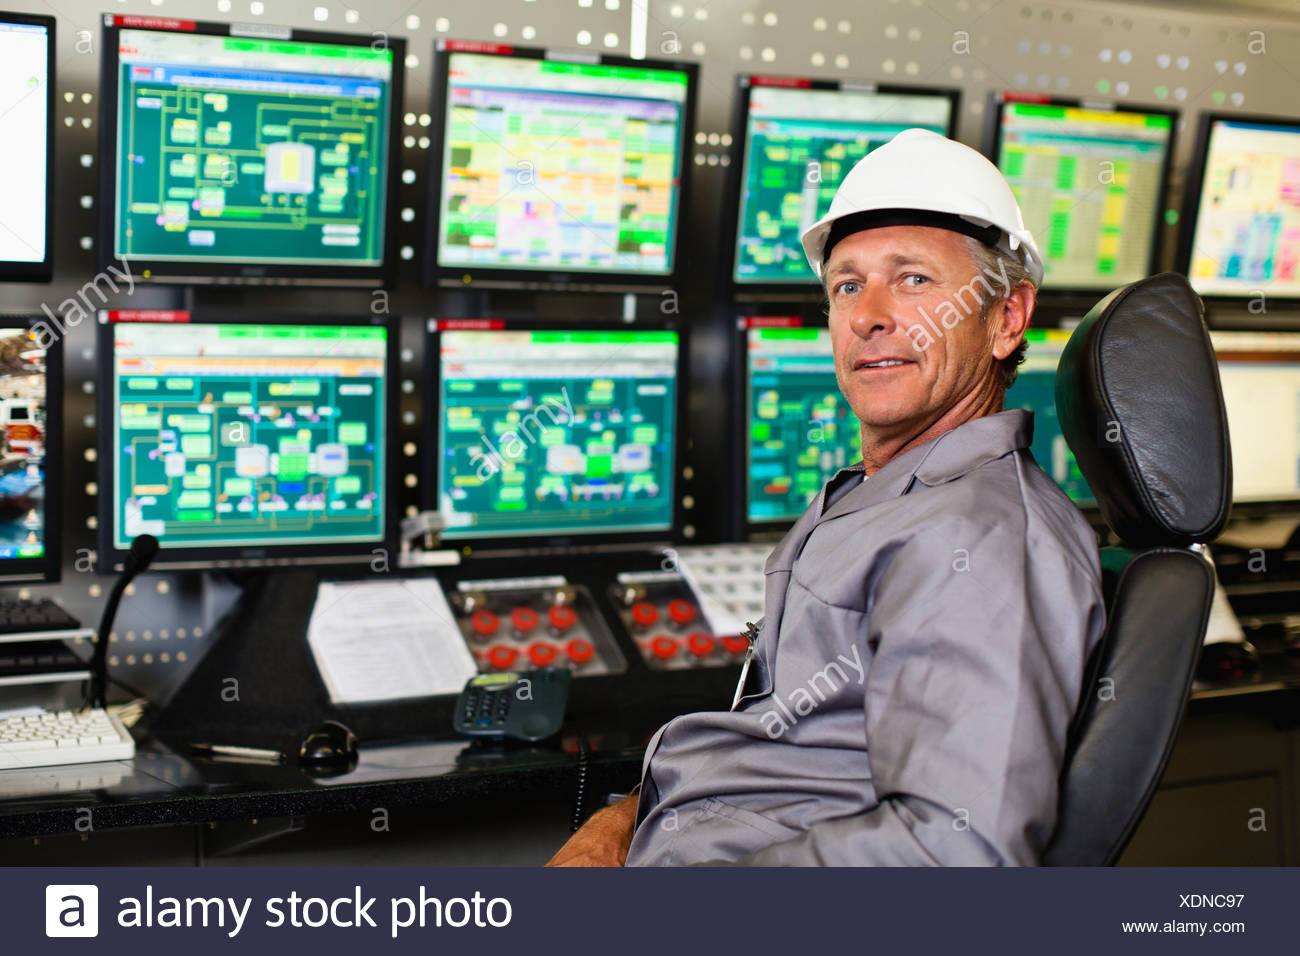 Man working in security control room - Stock Image